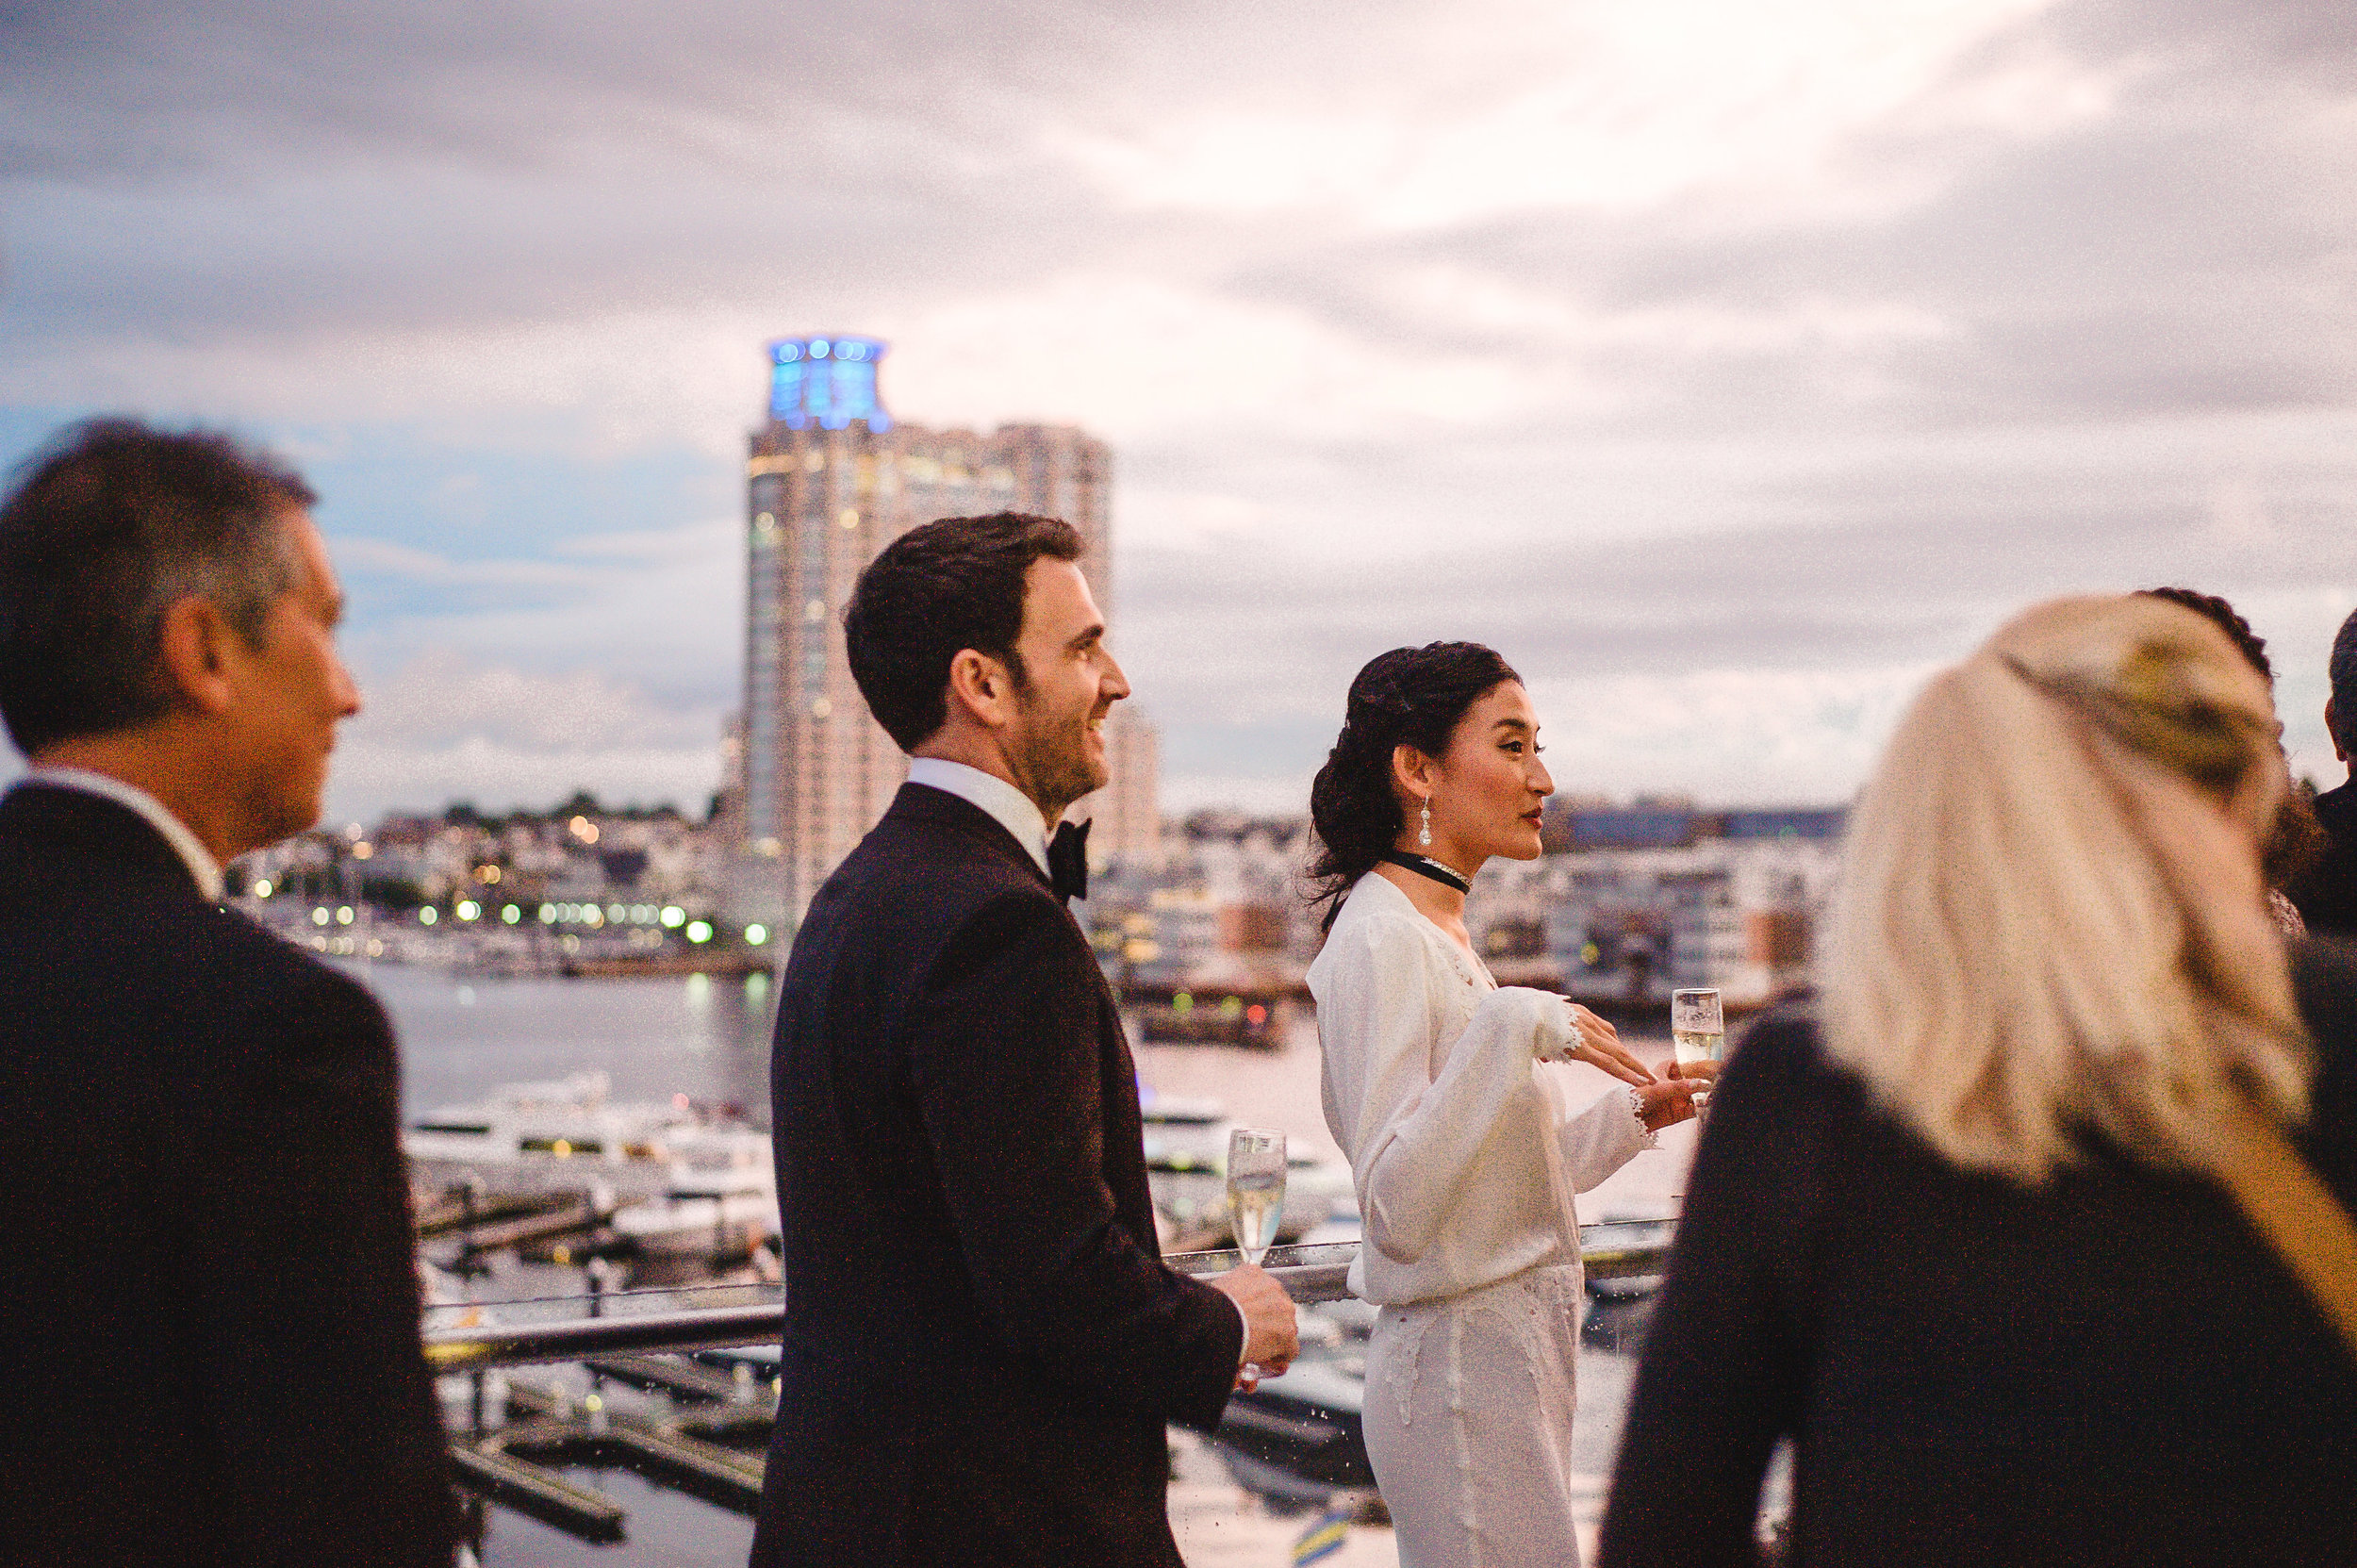 Baltimore Legg Mason Tower Wedding | East Made Event Company Baltimore Maryland Wedding Planner | Photo by Hannah Gunnell2781.jpg